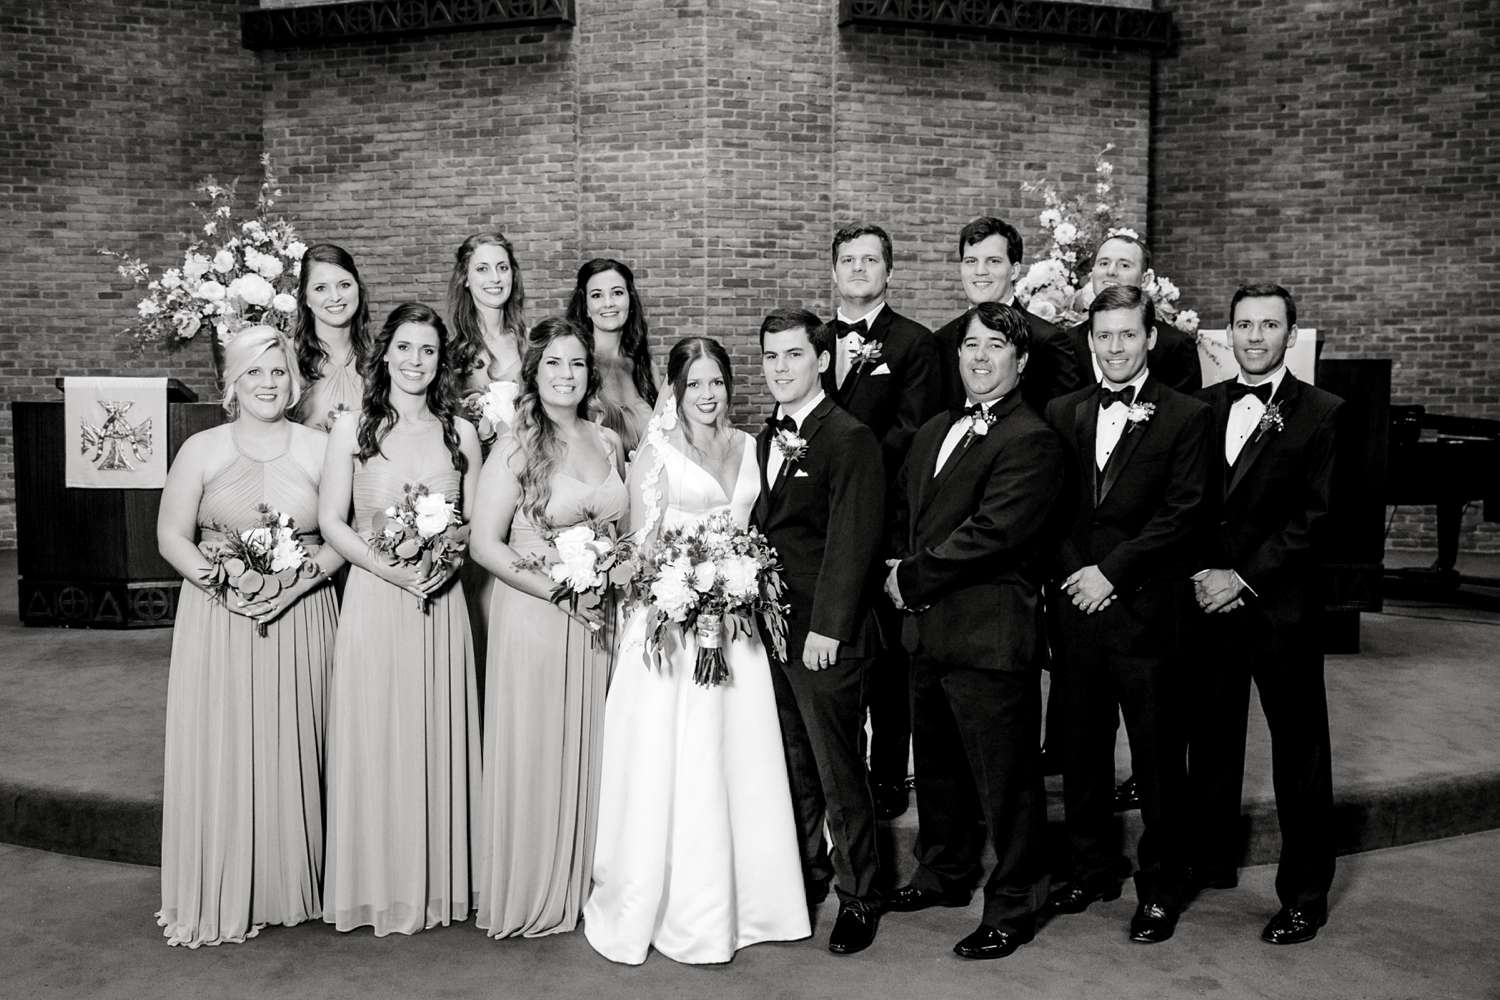 HANNAH+CRAIG+CHILDS+TEXAS+TECH+WEDDING+ALLEEJ+LUBBOCK+PHOTOGRAPHER_0099.jpg